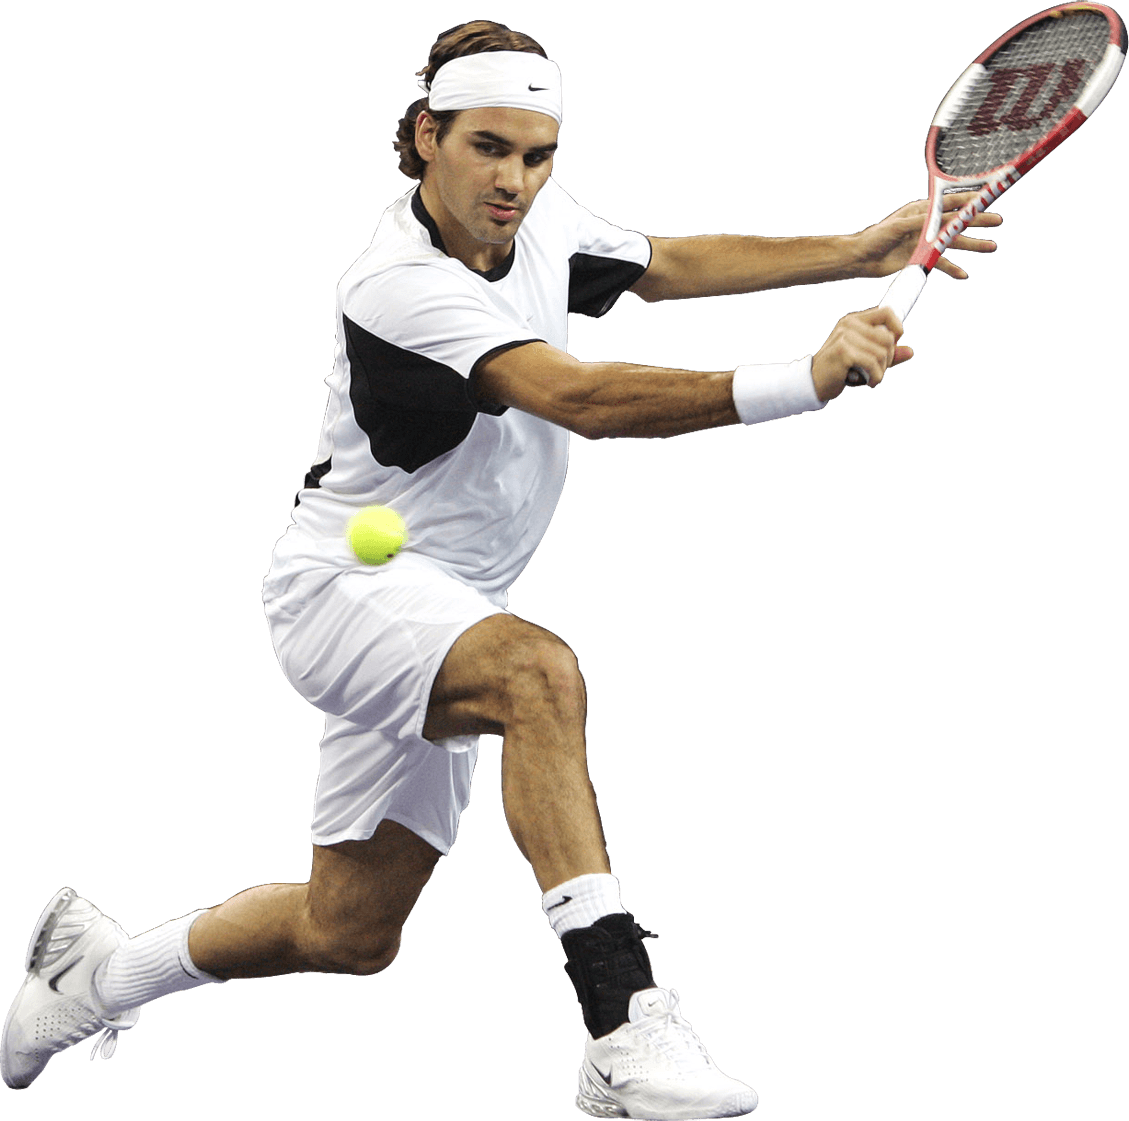 Image result for Tennis png